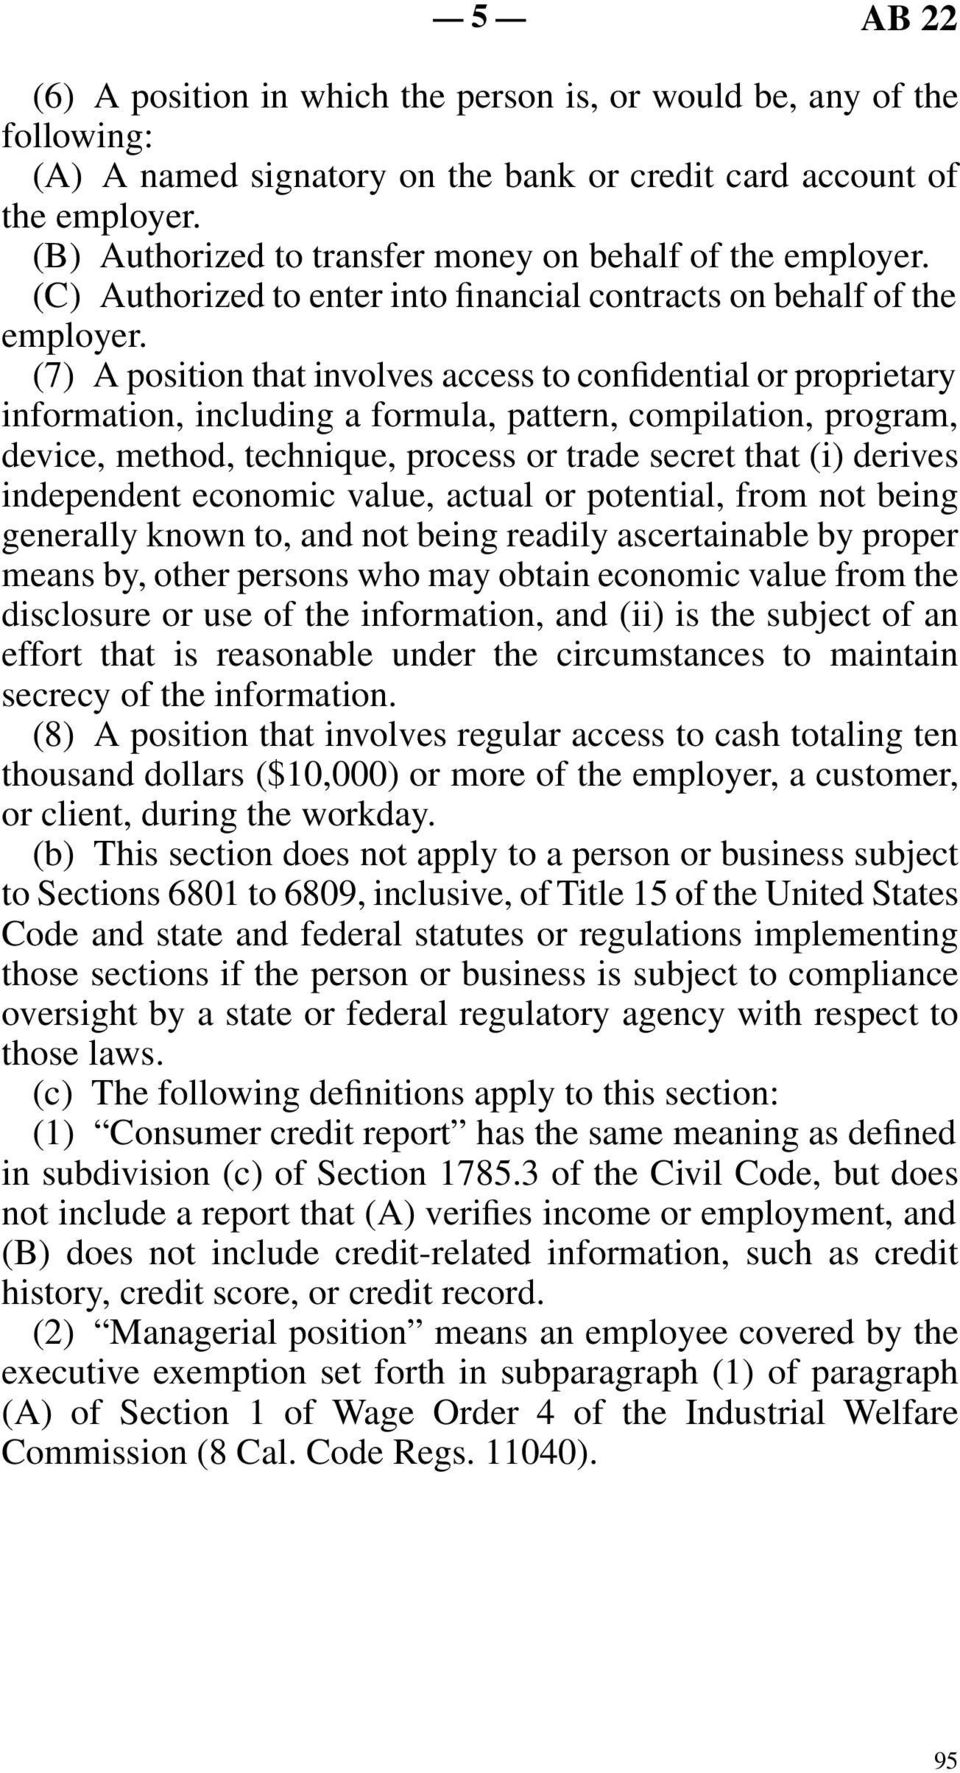 (7) A position that involves access to confidential or proprietary information, including a formula, pattern, compilation, program, device, method, technique, process or trade secret that (i) derives